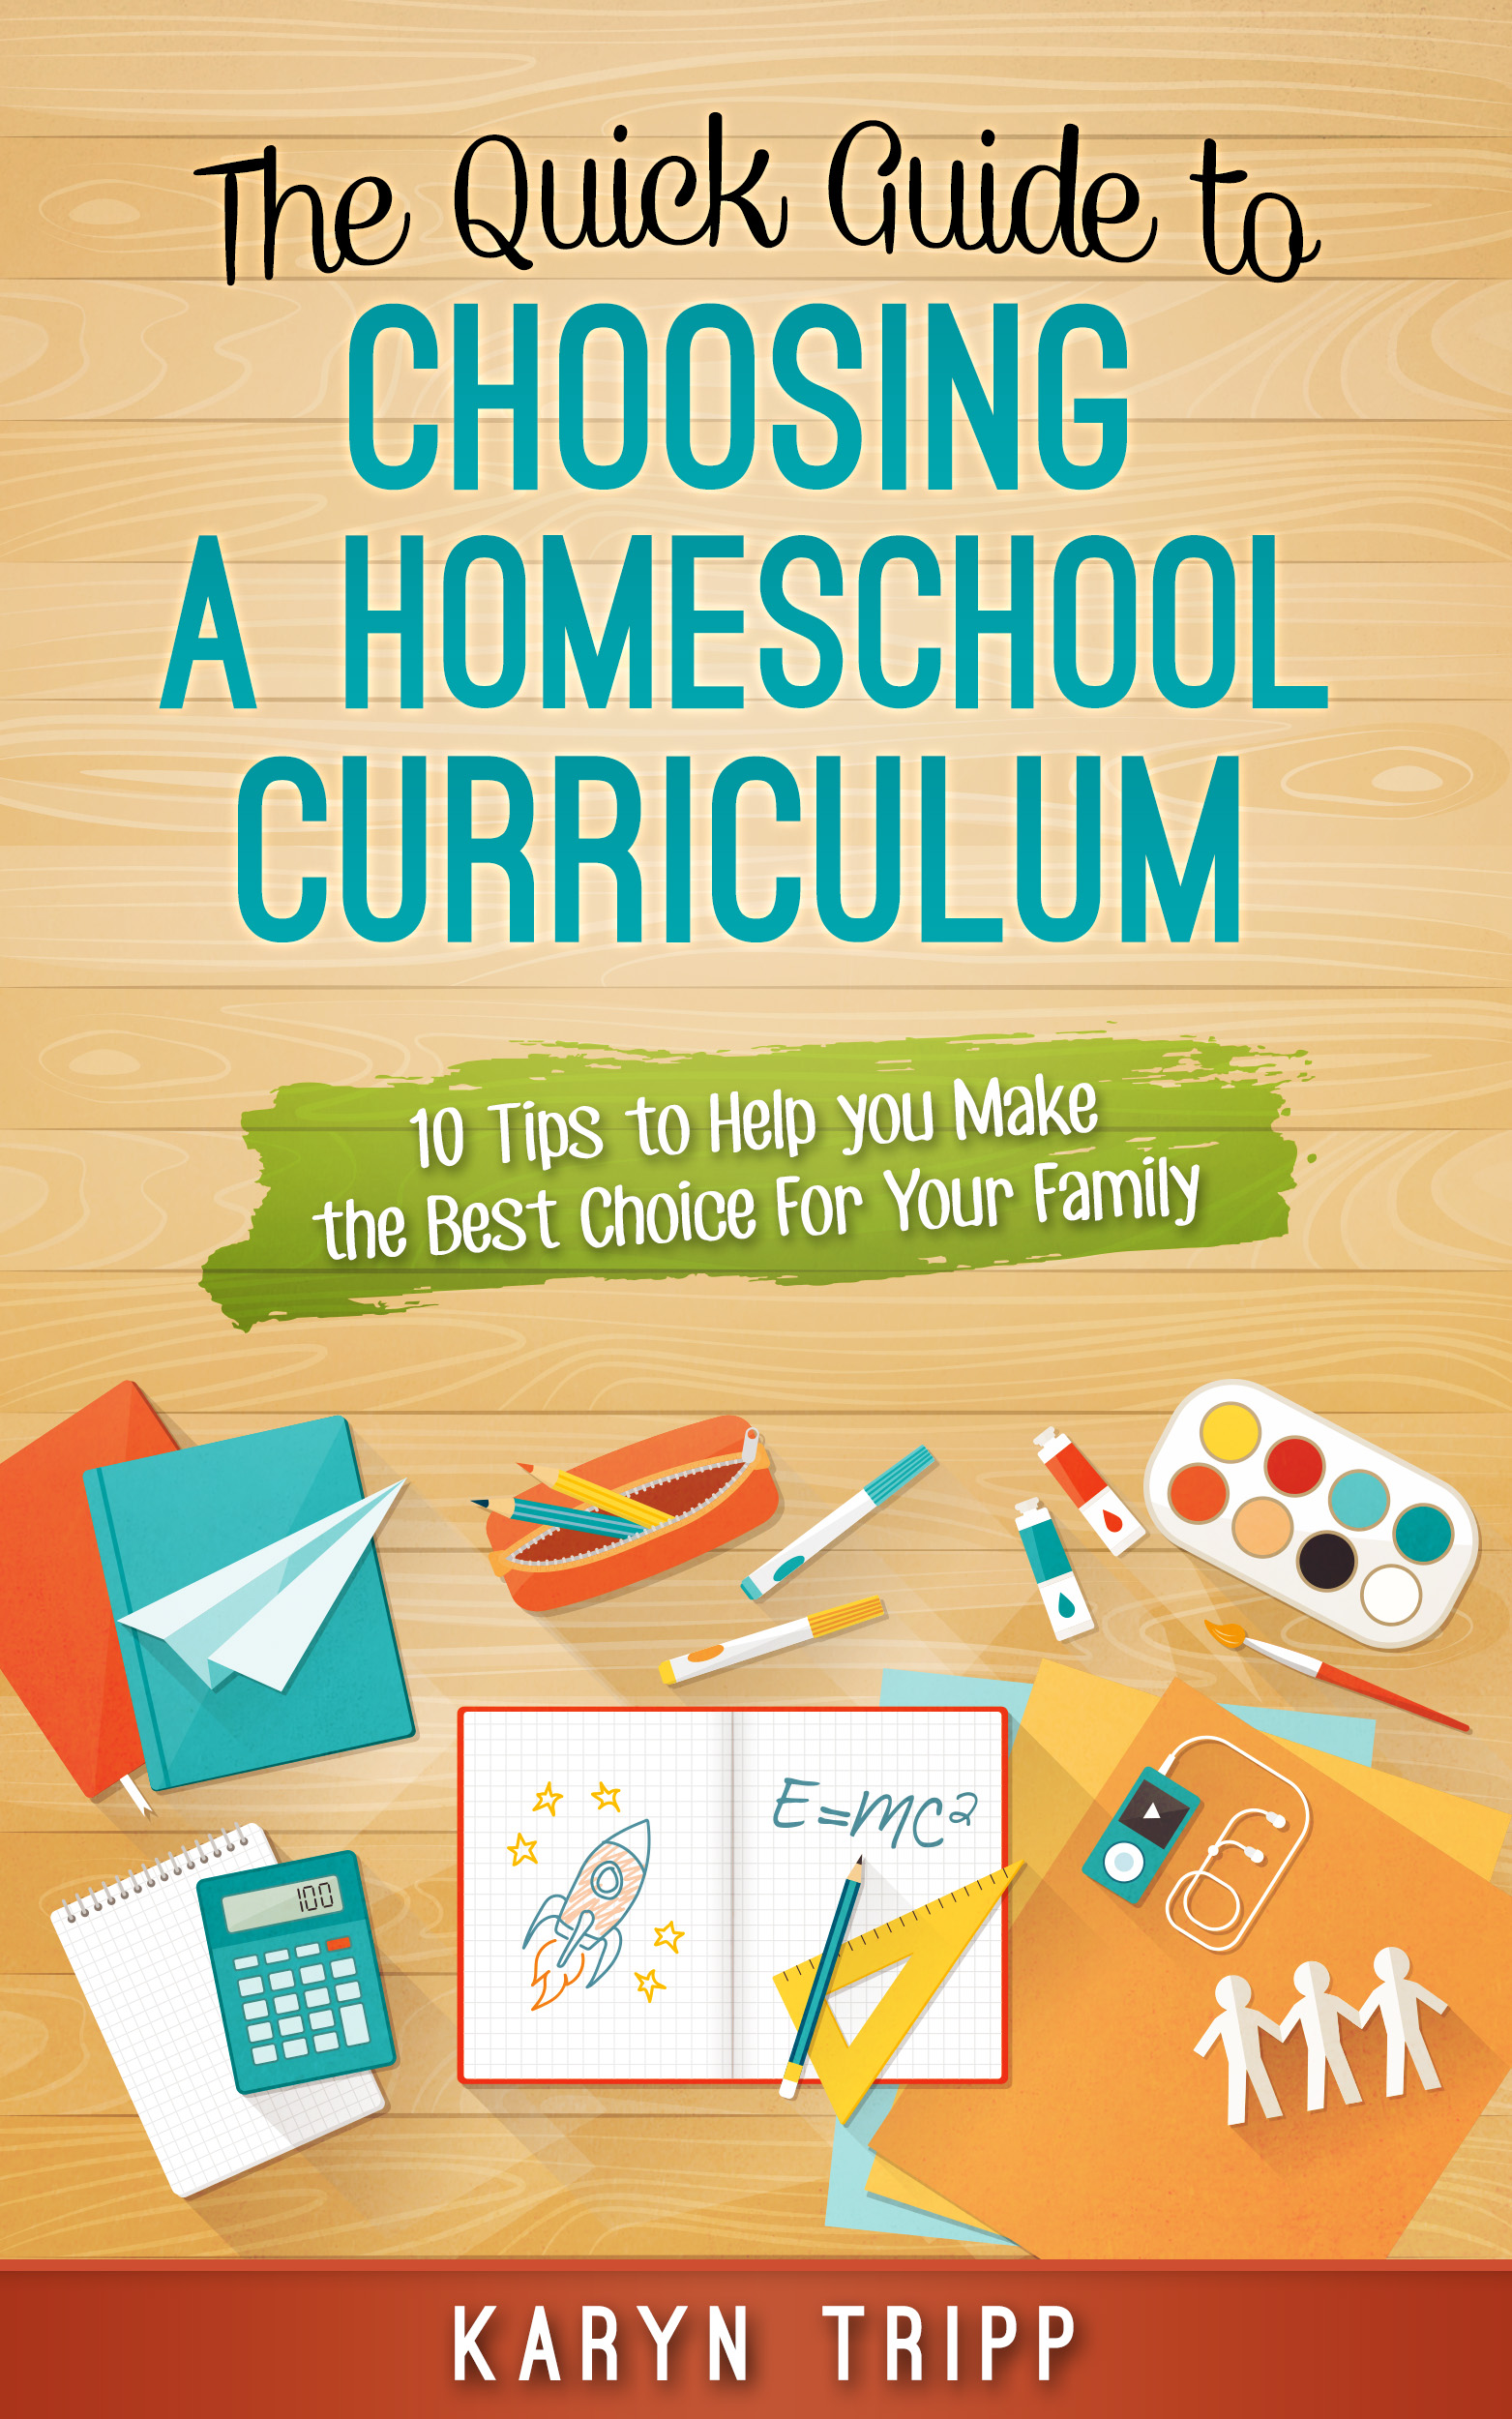 The Quick Guide to Choosing a Homeschool Curriculum